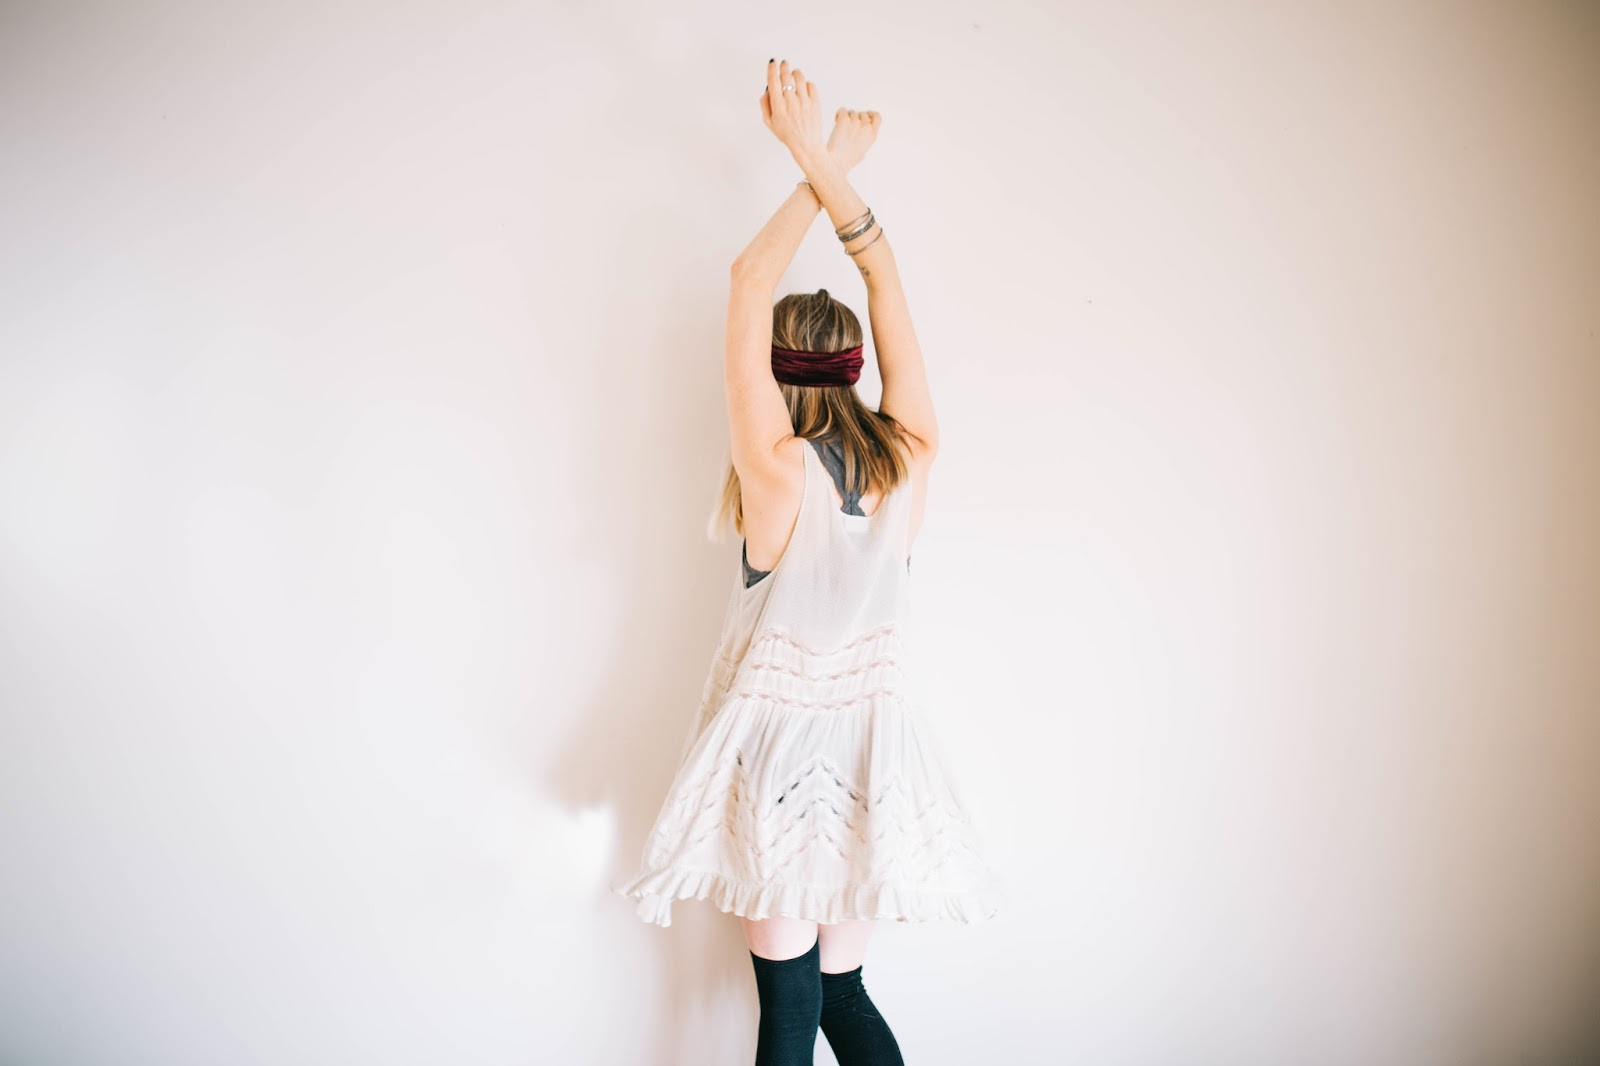 Woman with hands in the air - spring clean your beauty routine & win Boots giftcard